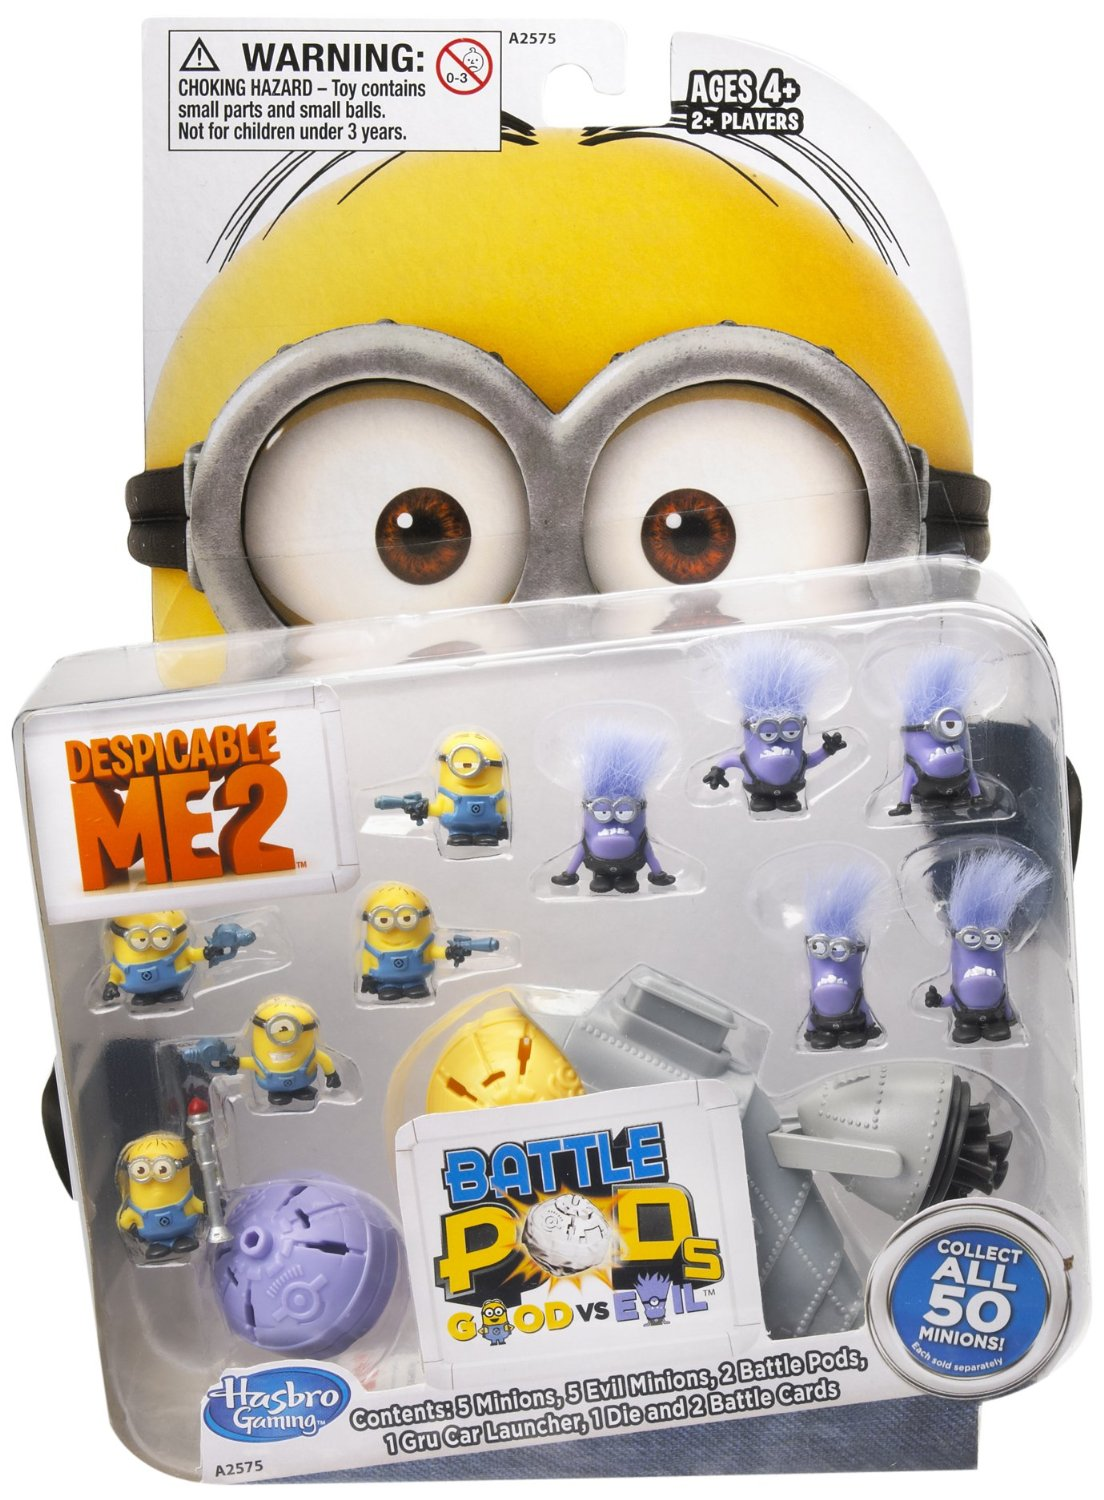 Minion Toys And Games : Cheap despicable me games and activities for kids family